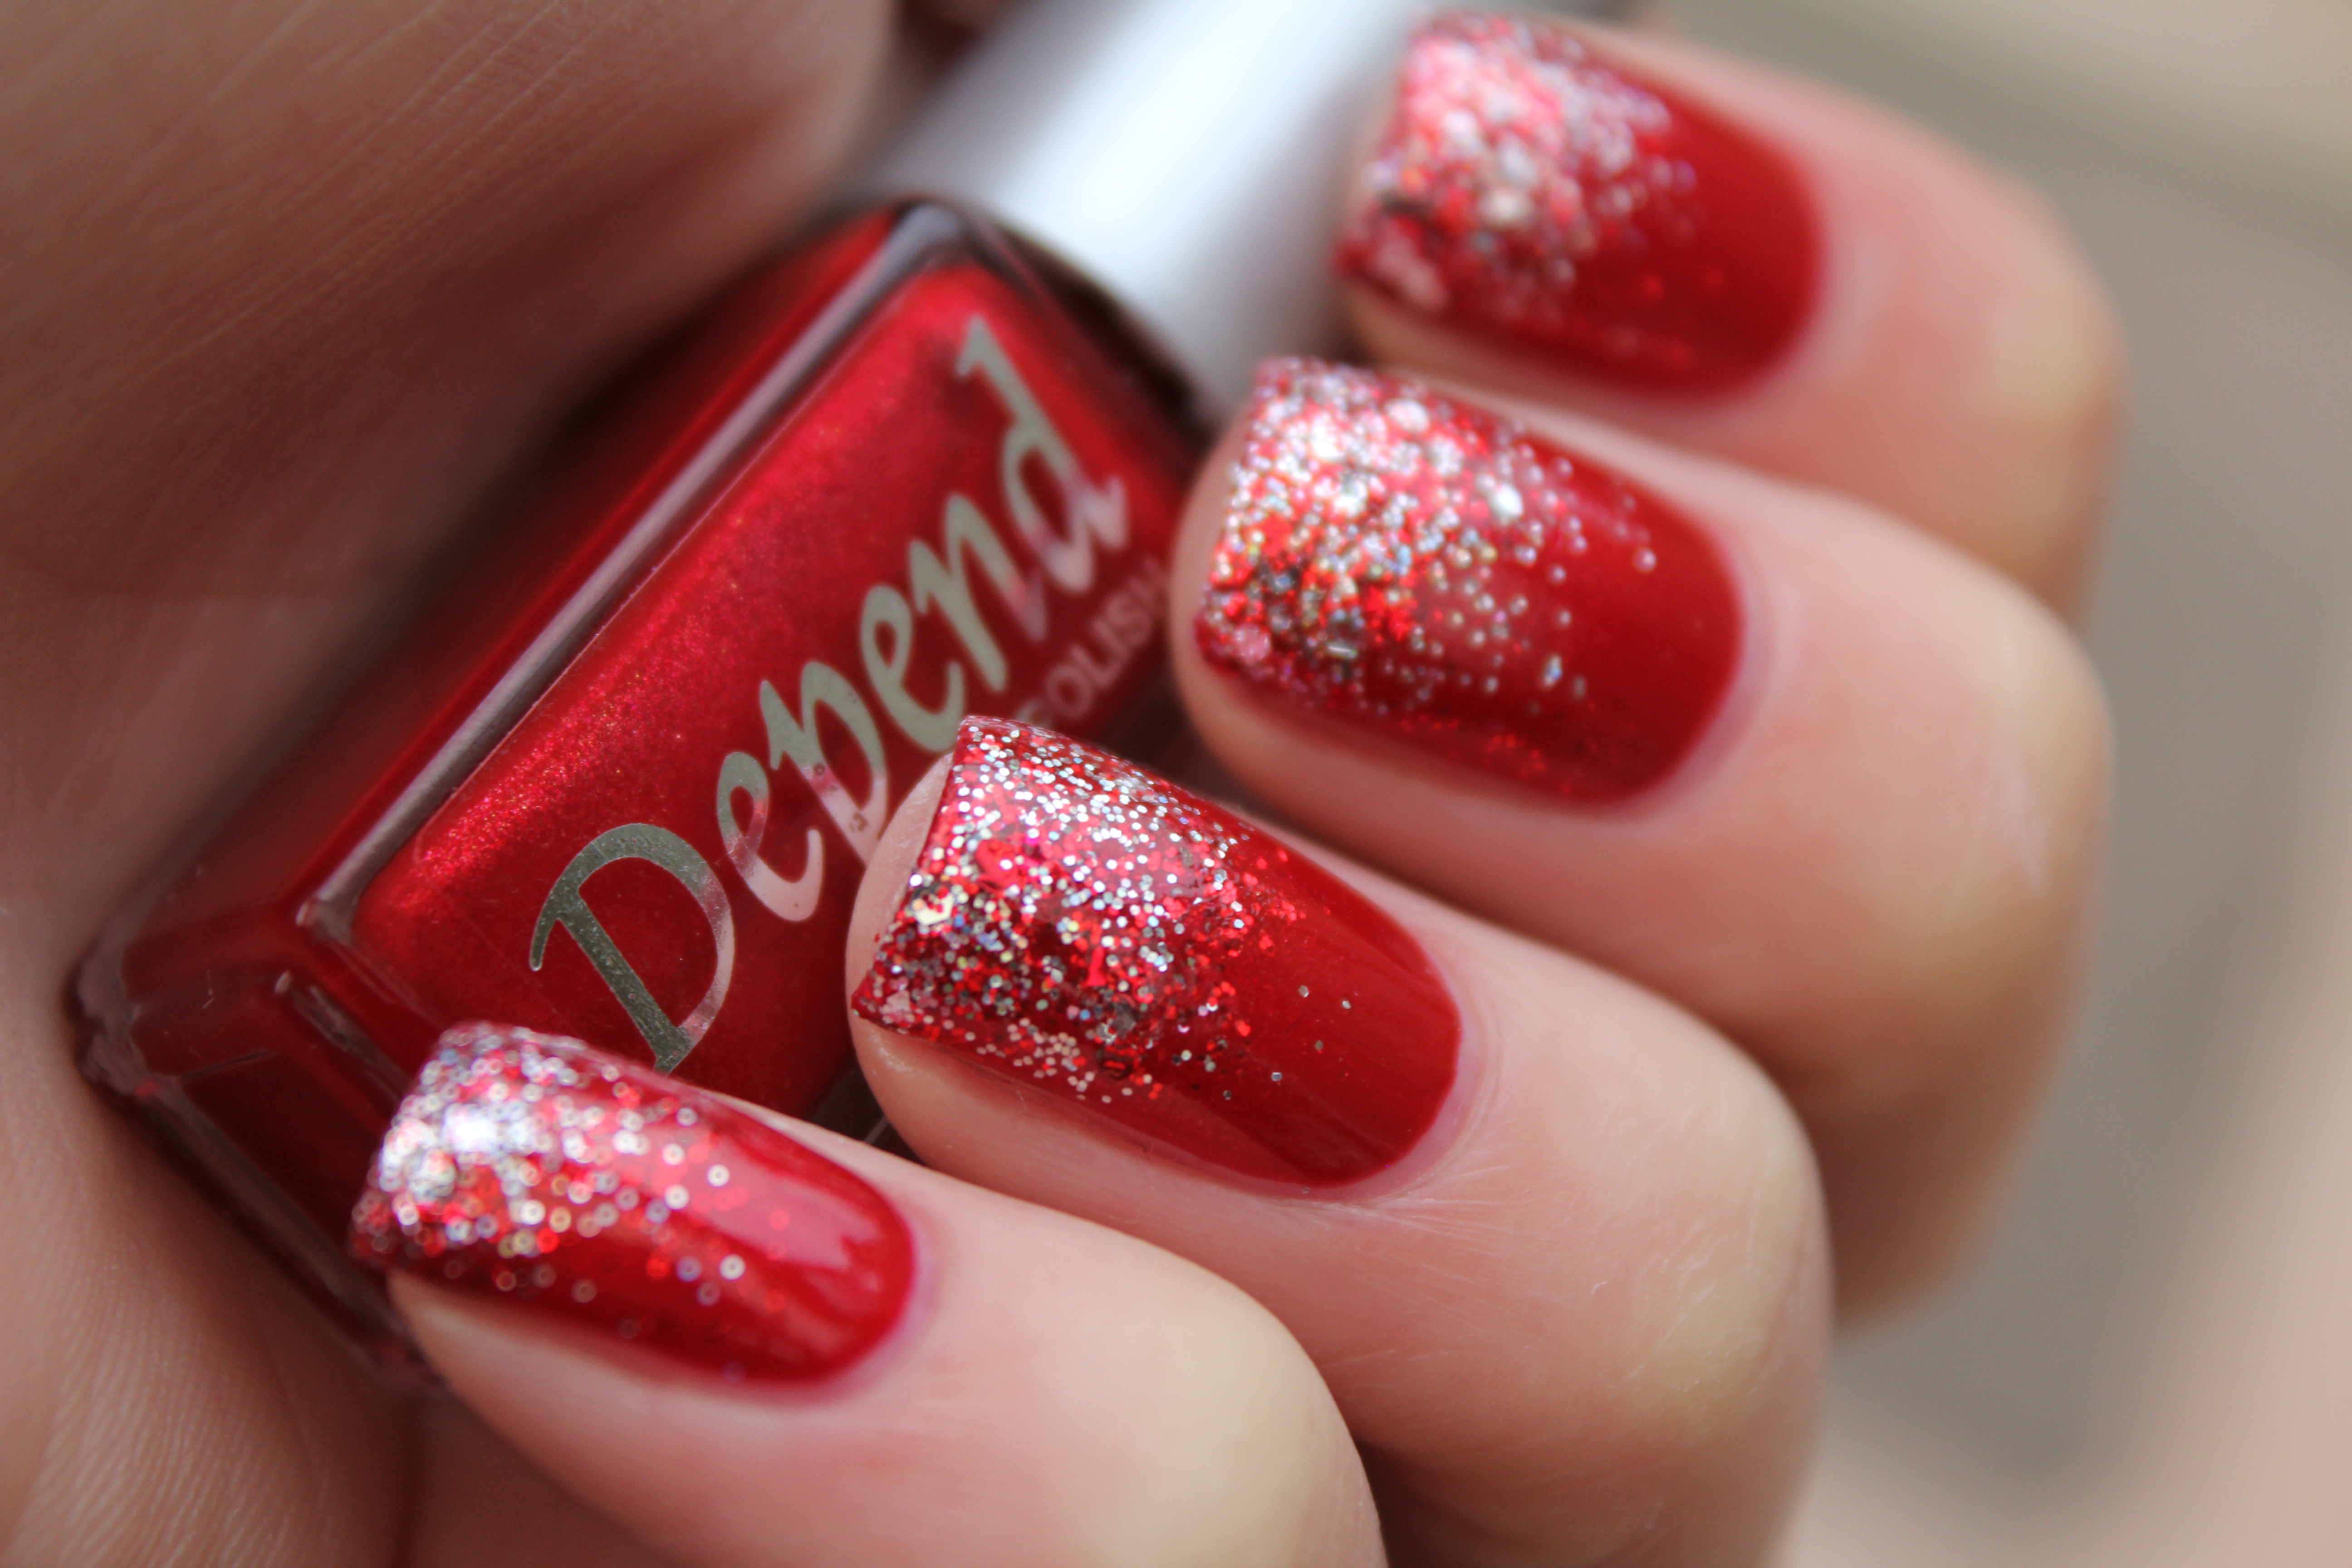 12 Days Of Christmas 7 Glitter That Depends